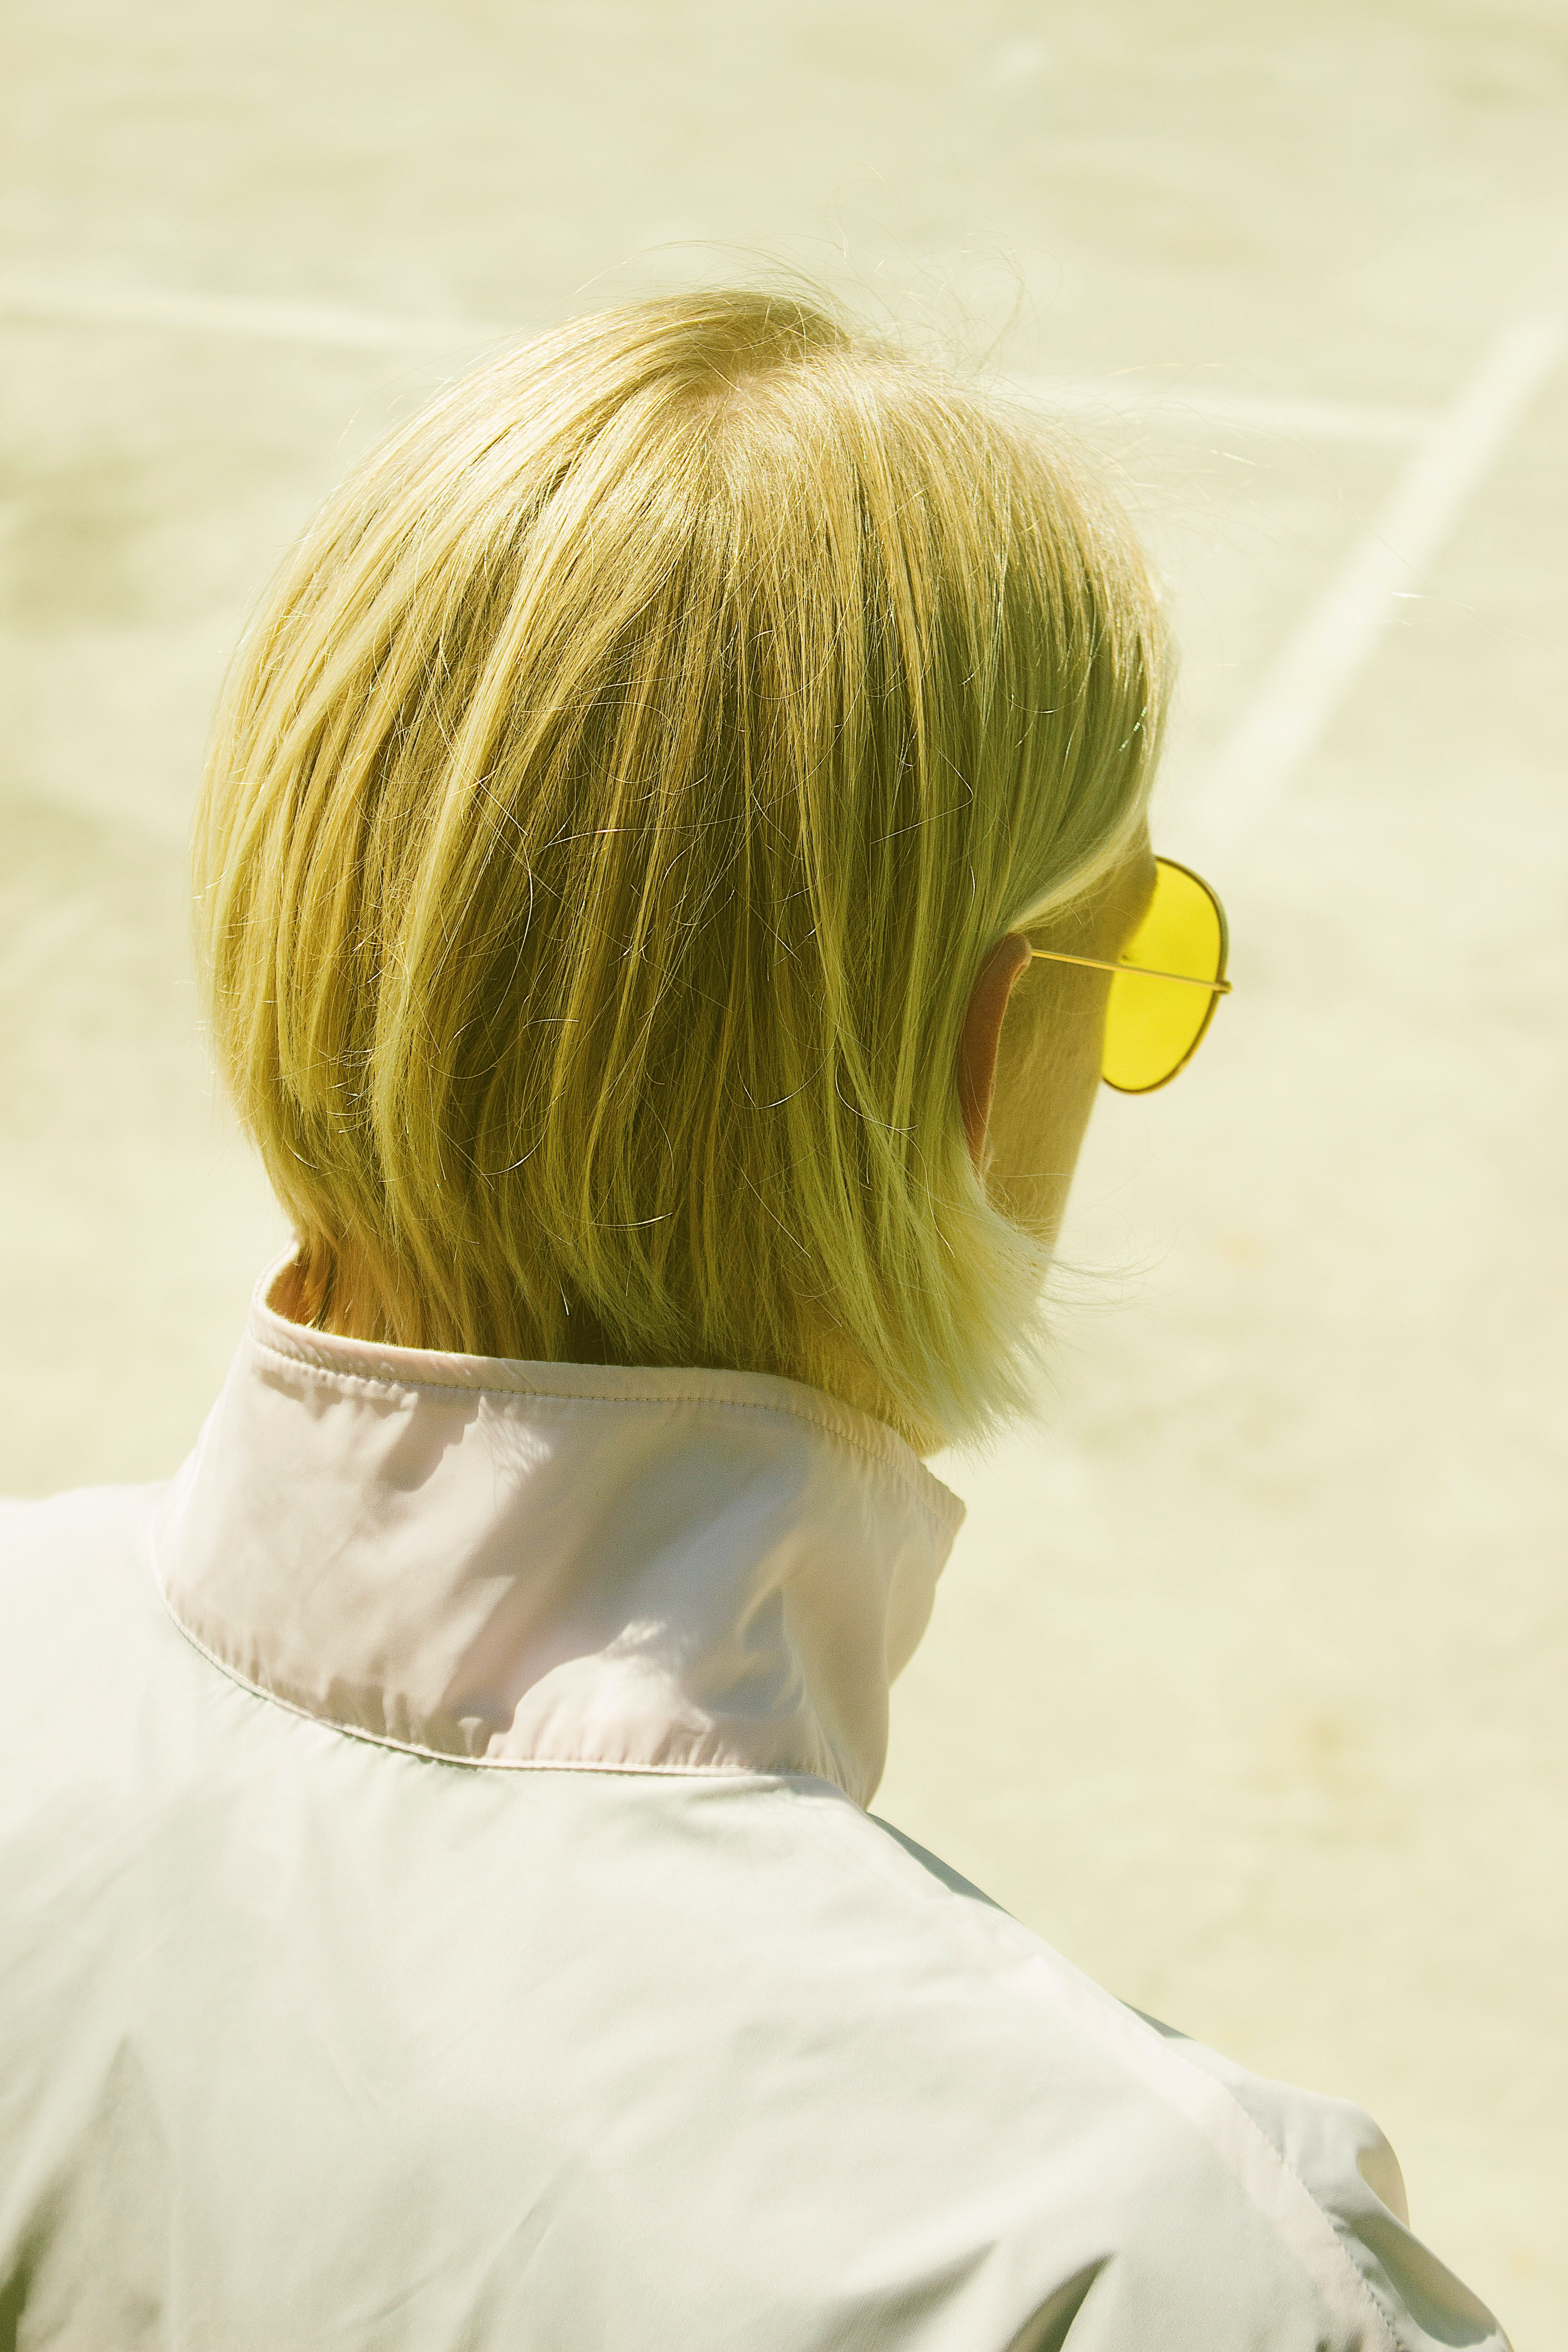 person wearing yellow sunglasses